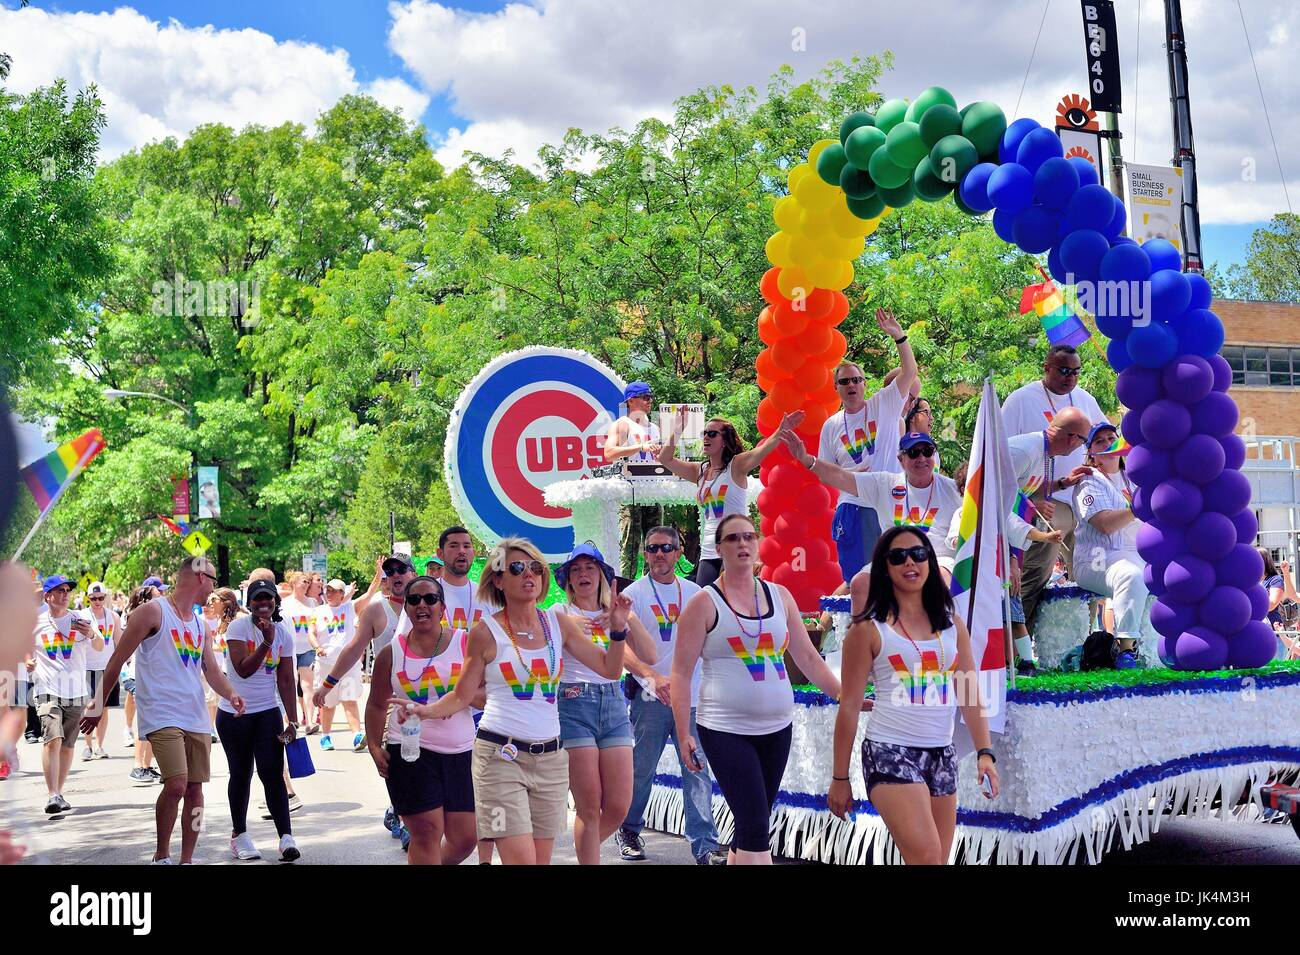 A corporate and local presence in the form of a float representing the Chicago Cubs in Chicago's Pride Parade. - Stock Image